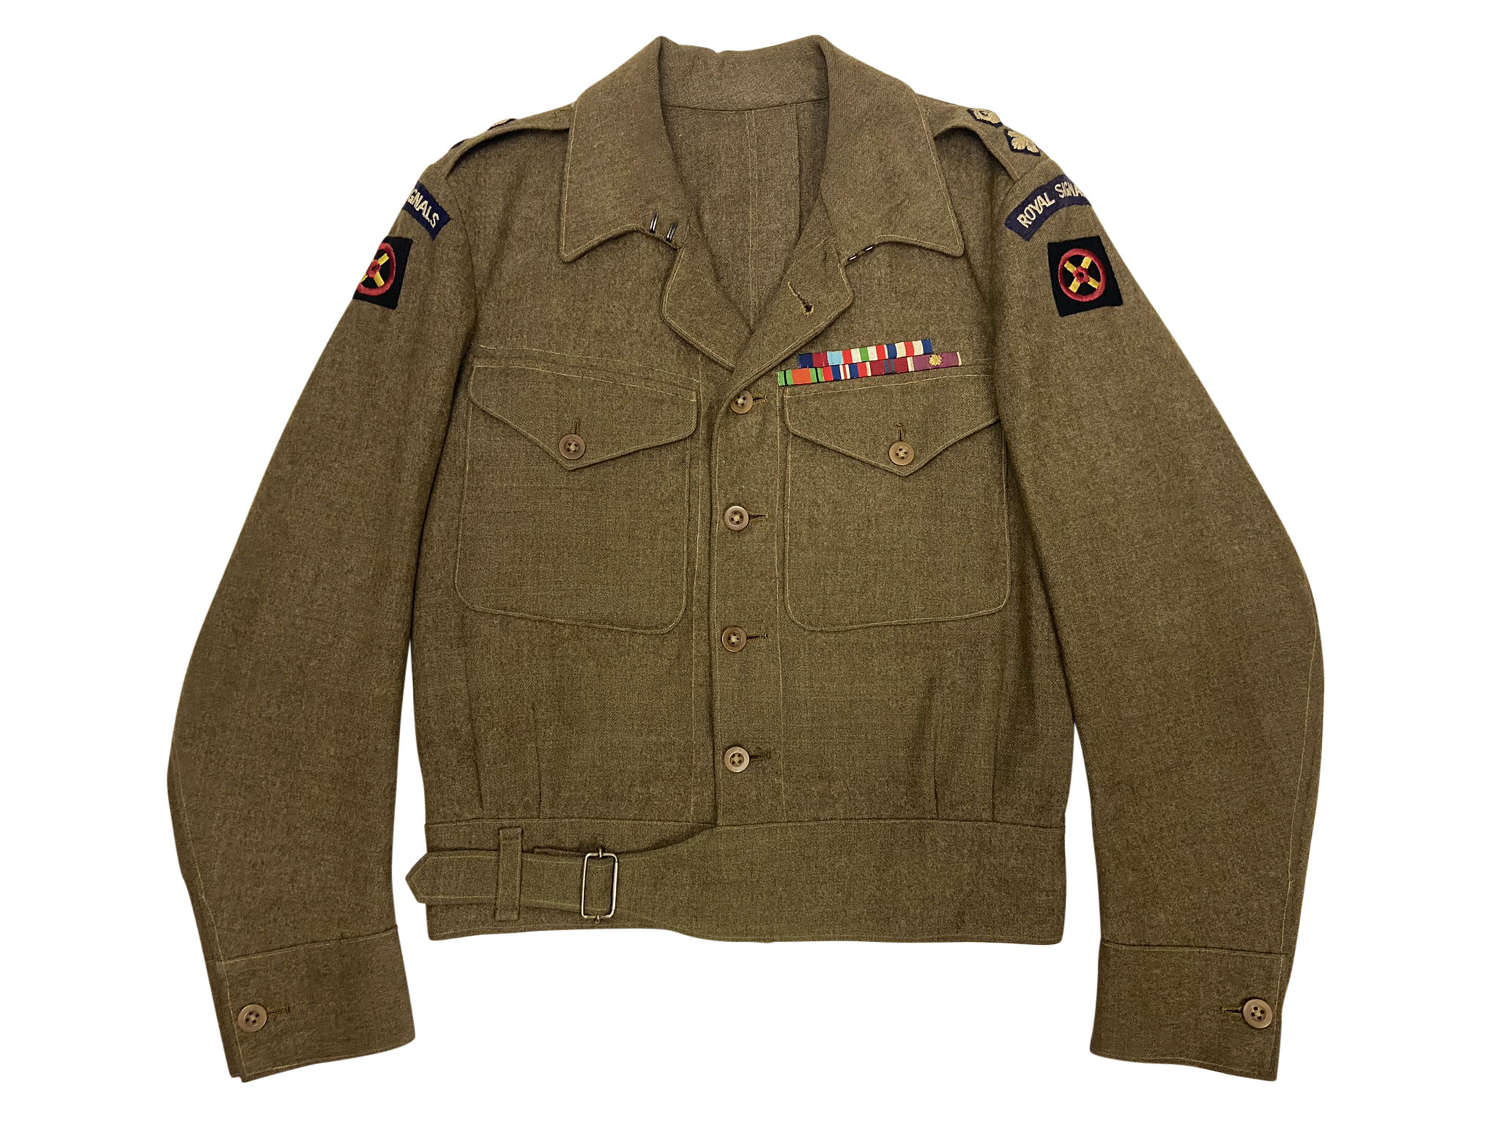 Original Private Purchase Battledress Blouse to a Royal Signals Lt/Col